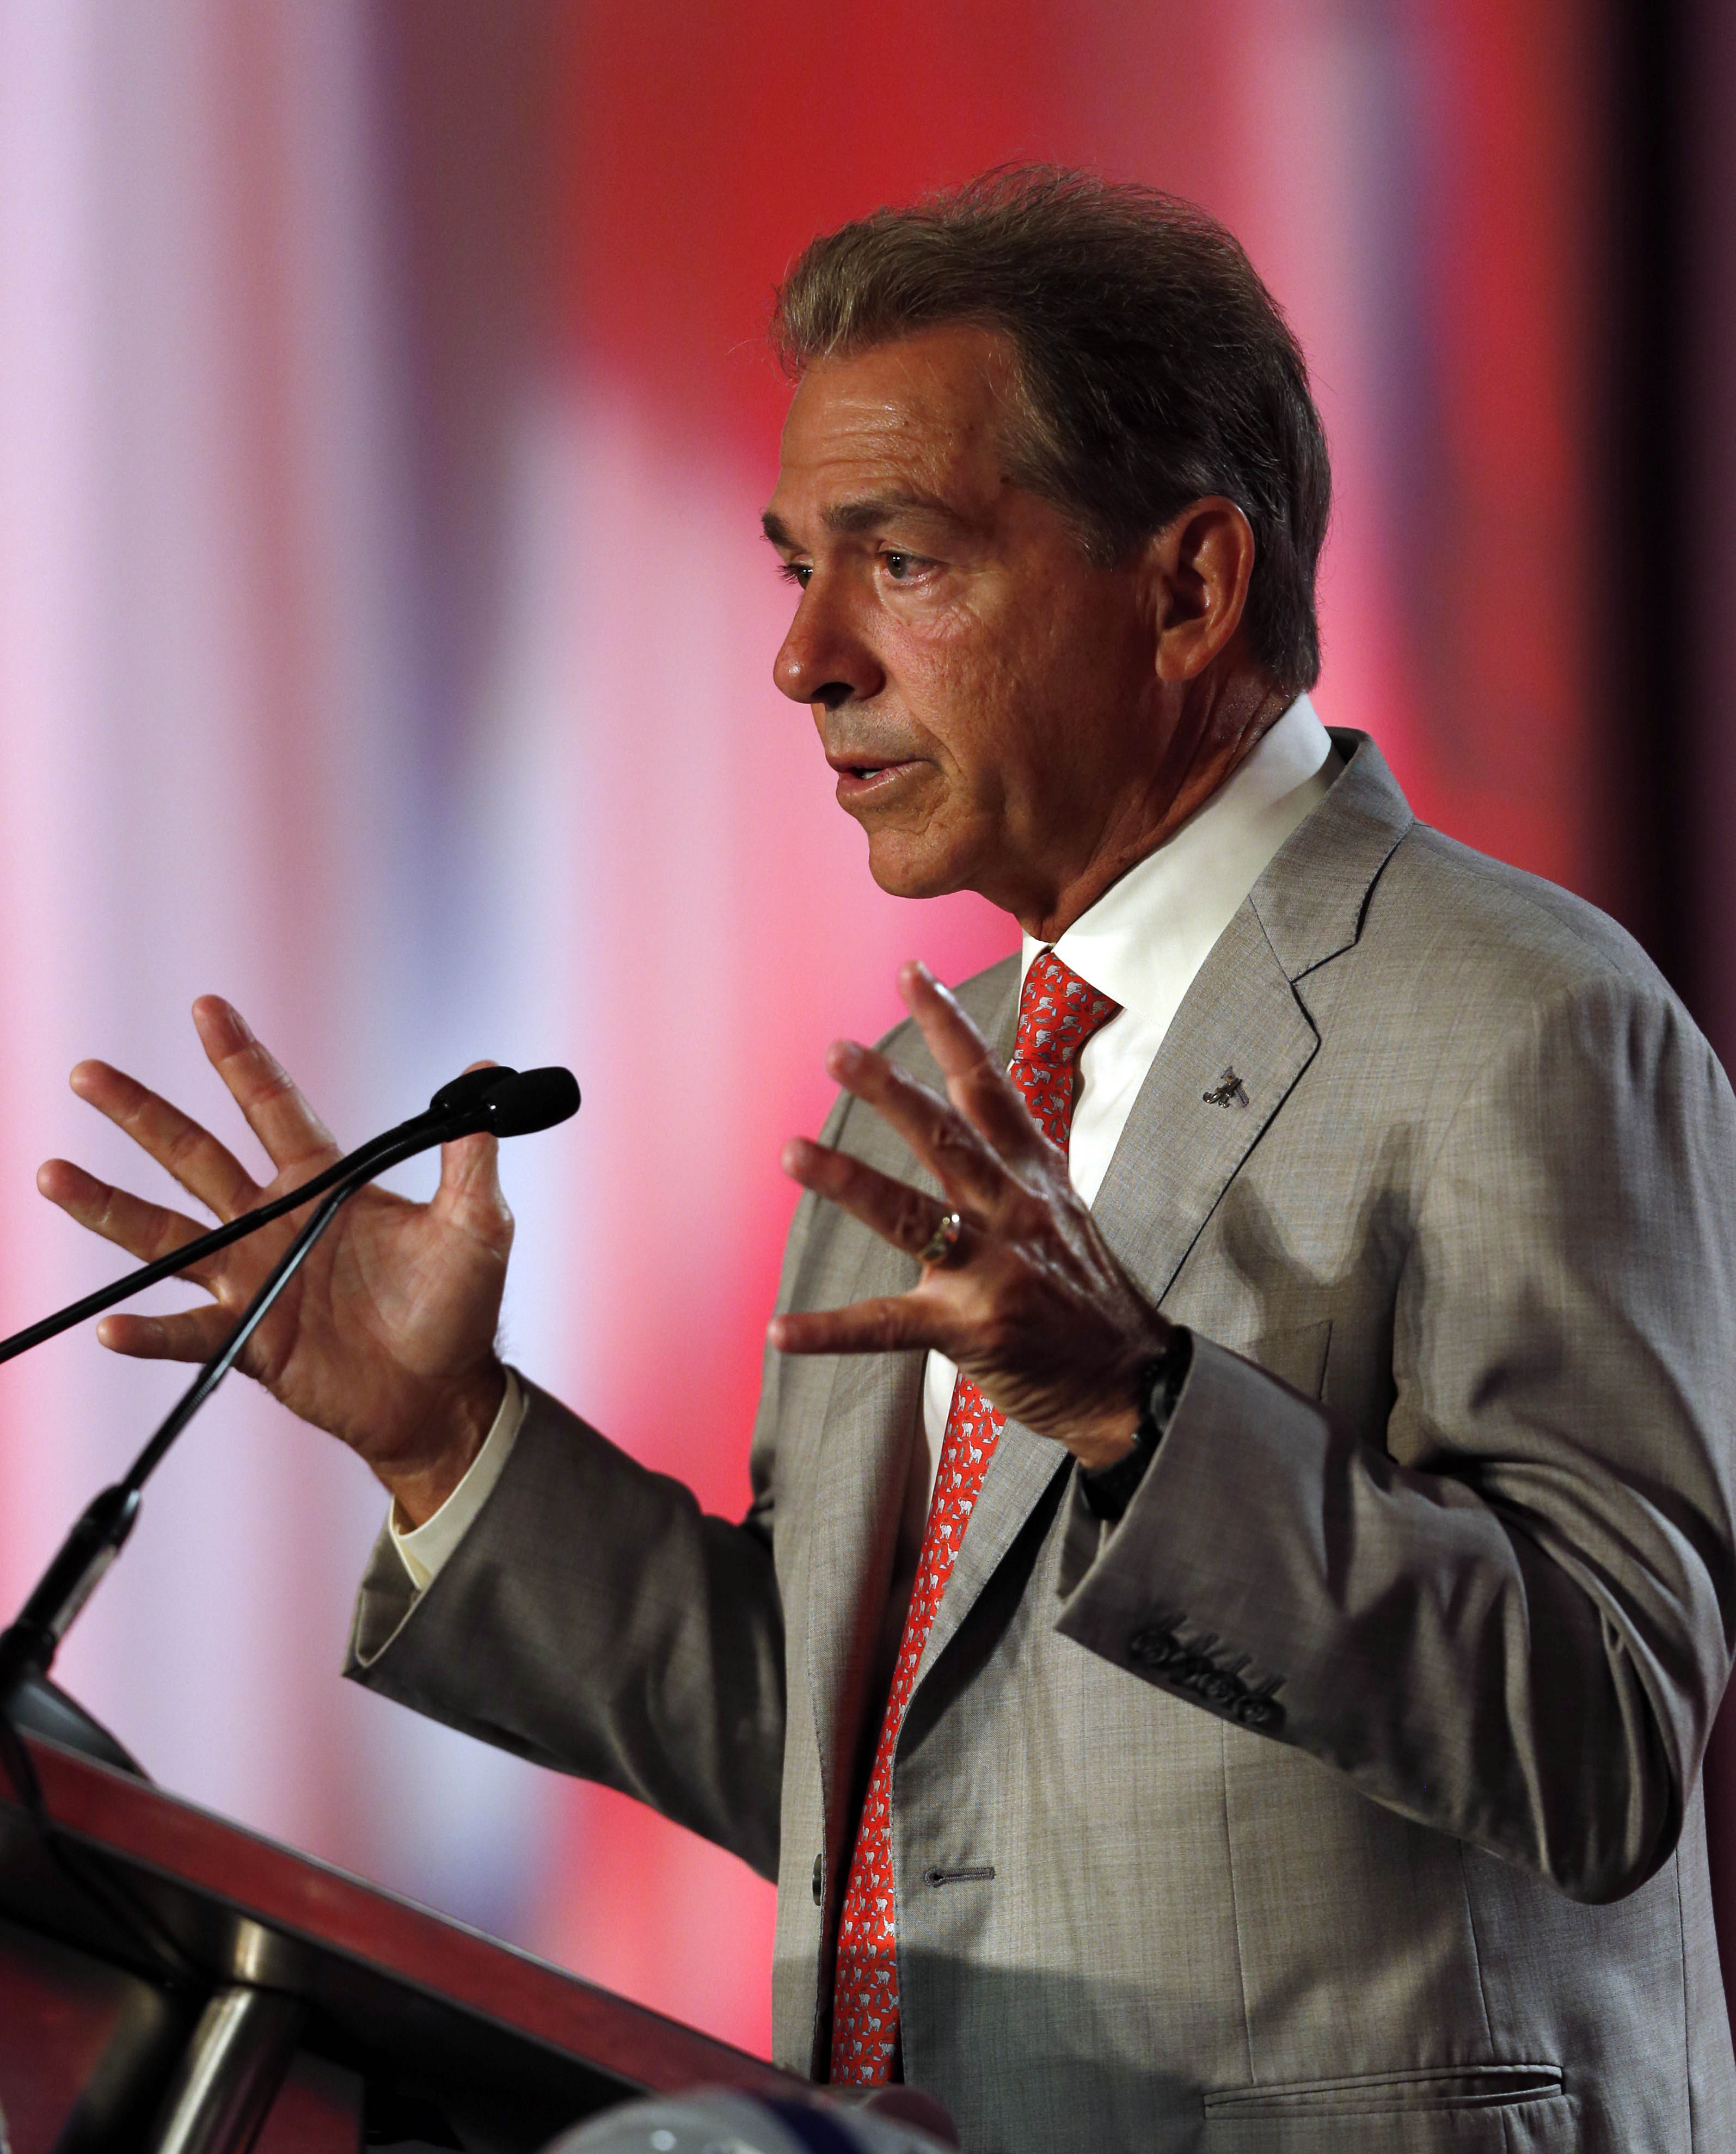 nick saban pro football rumors